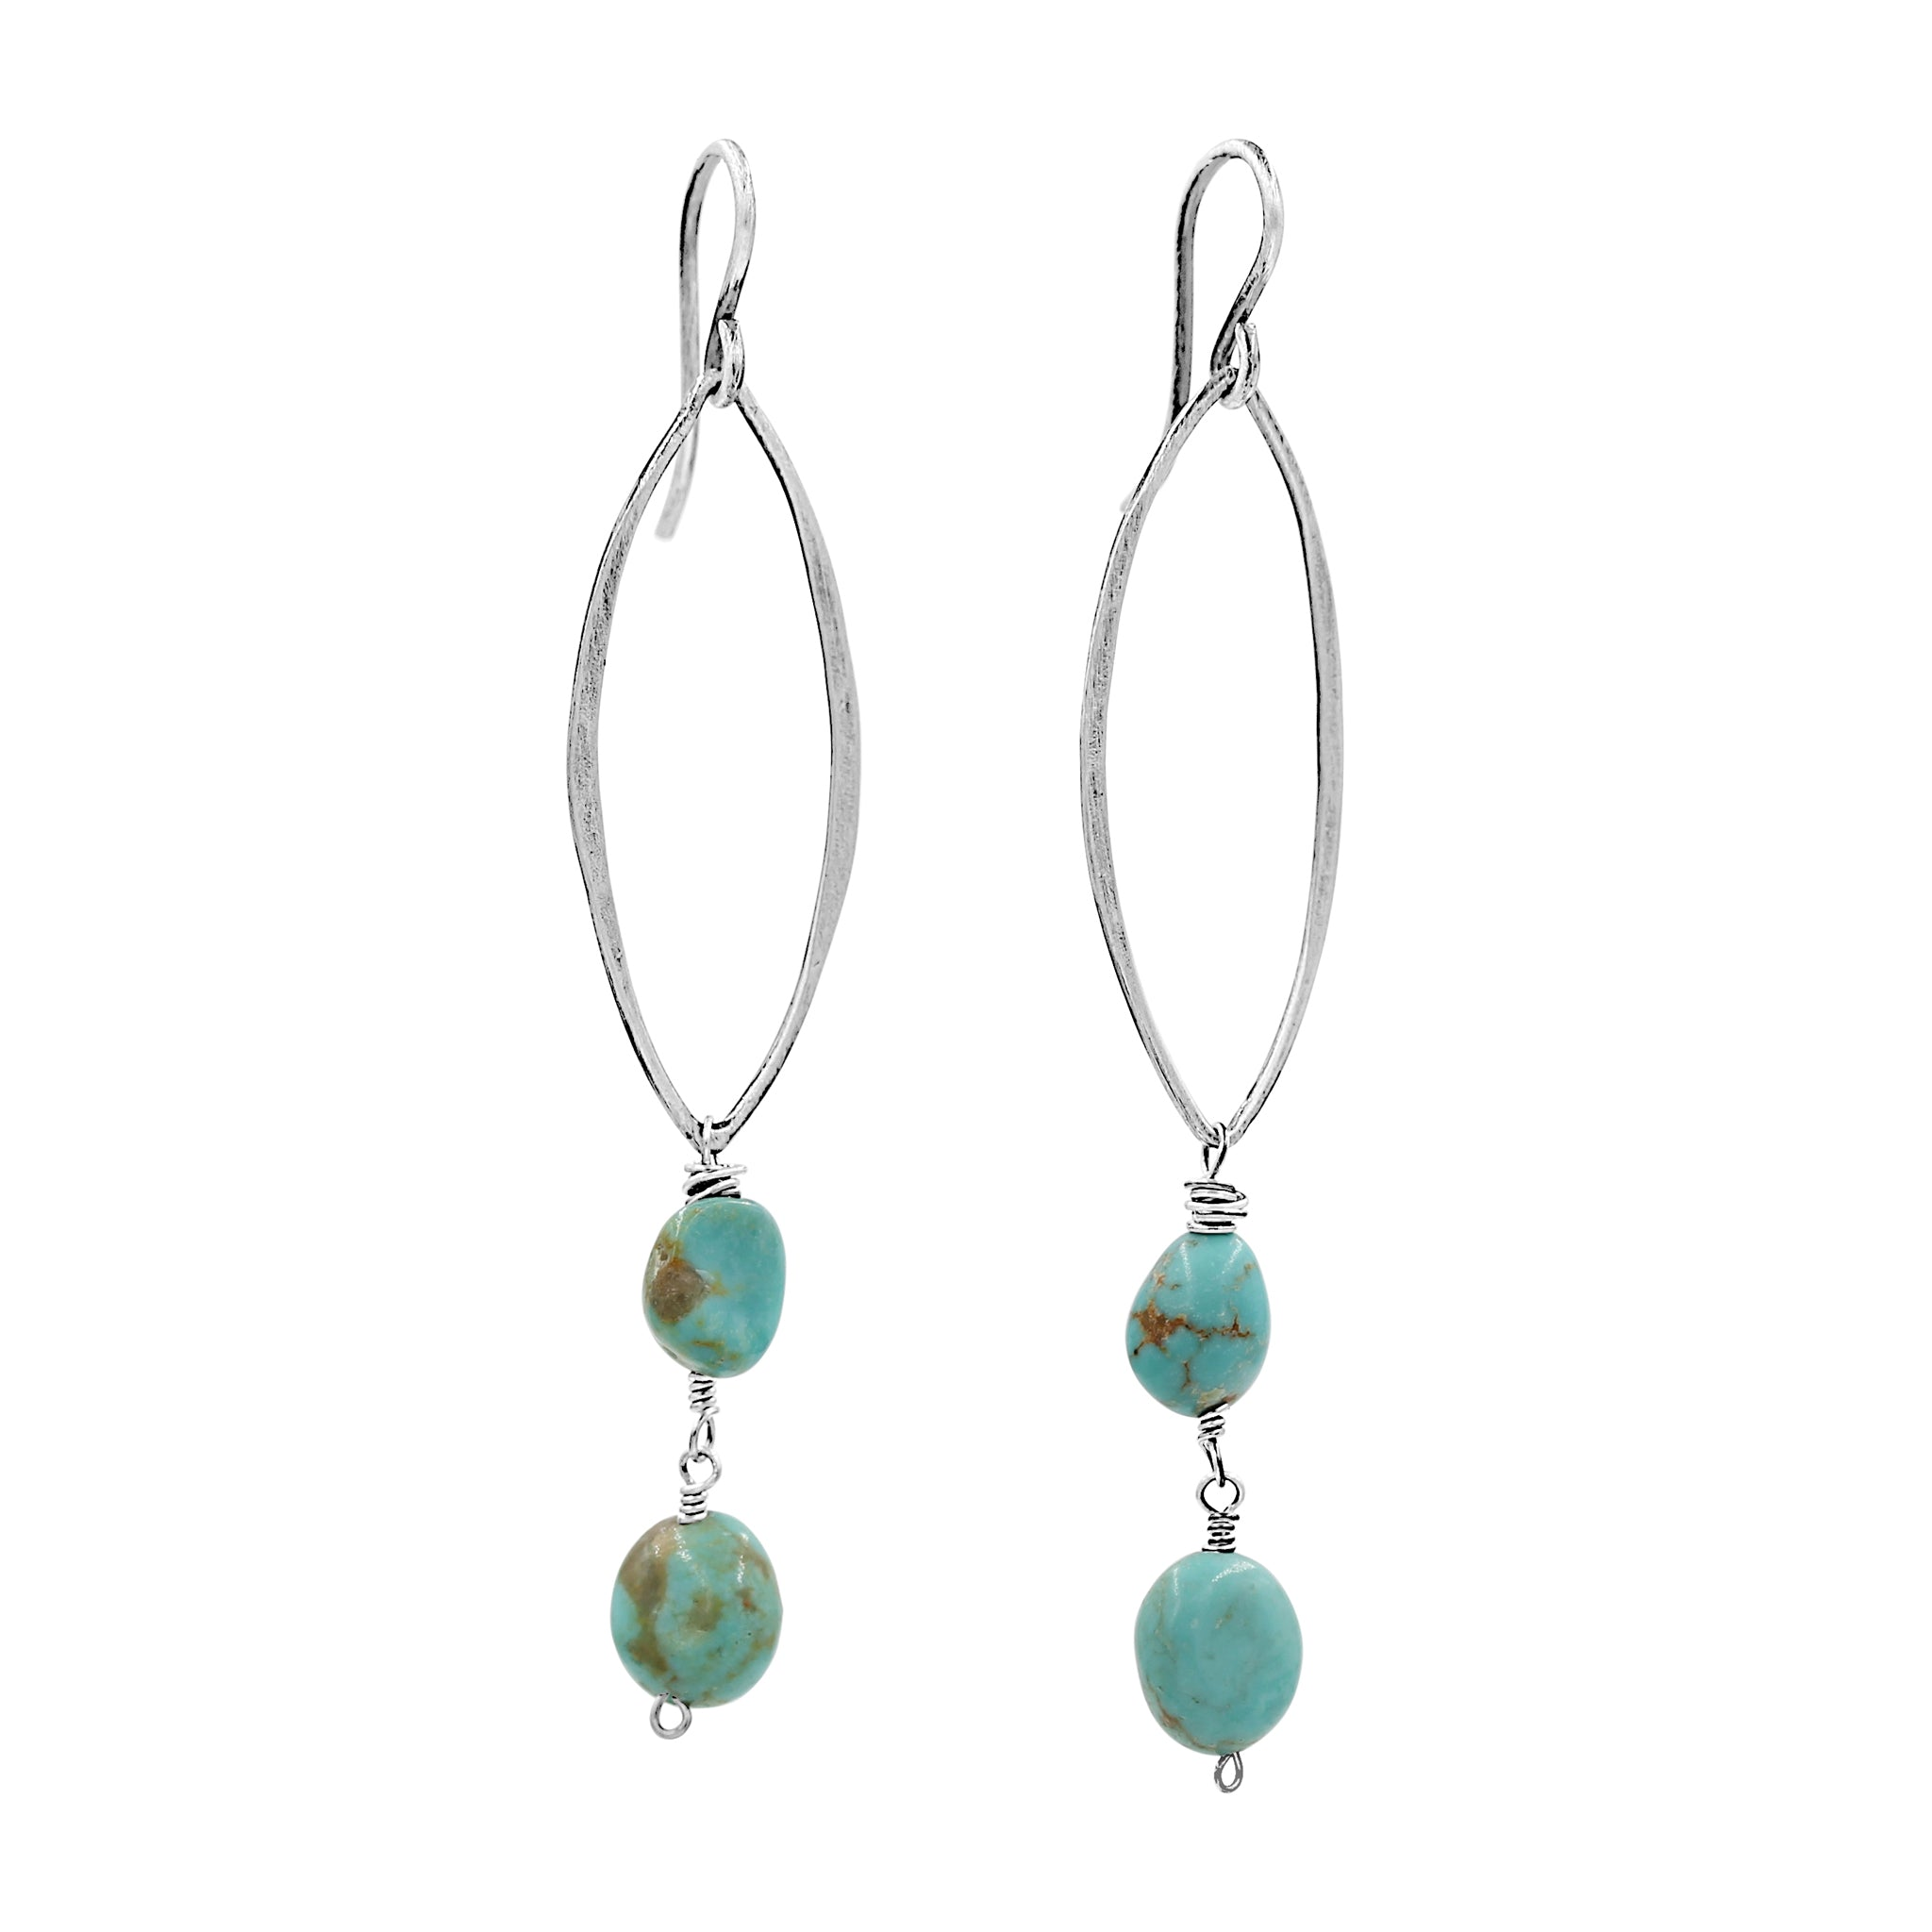 Perfect Blue Waves of Turquoise earrings - Sati Gems Hawaii Healing Crystal Gemstone Jewelry